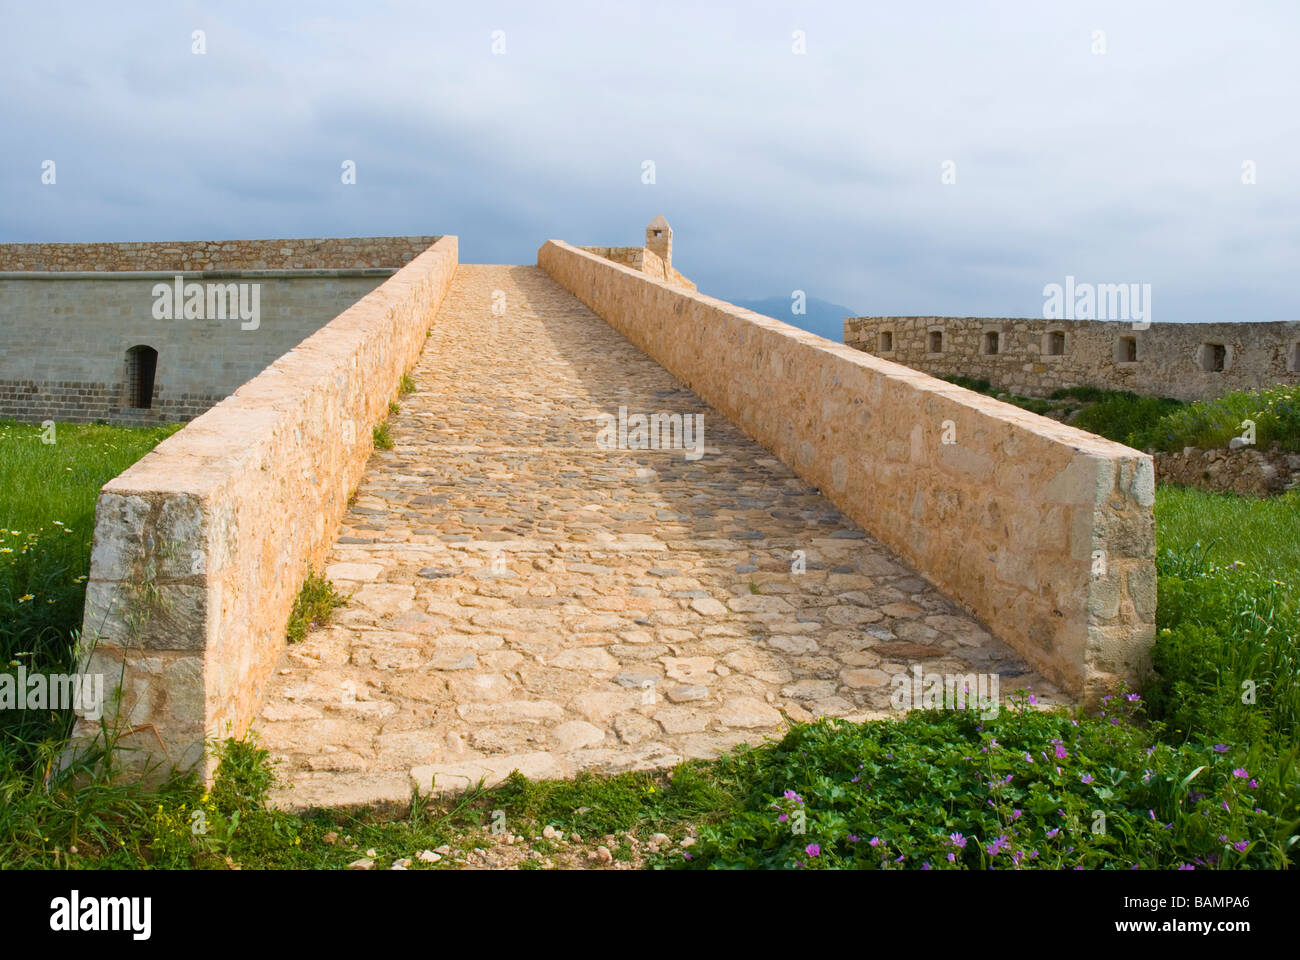 Rebuilt ruins at Fortezza the fortress in Rethymno Crete Greece Europe Stock Photo